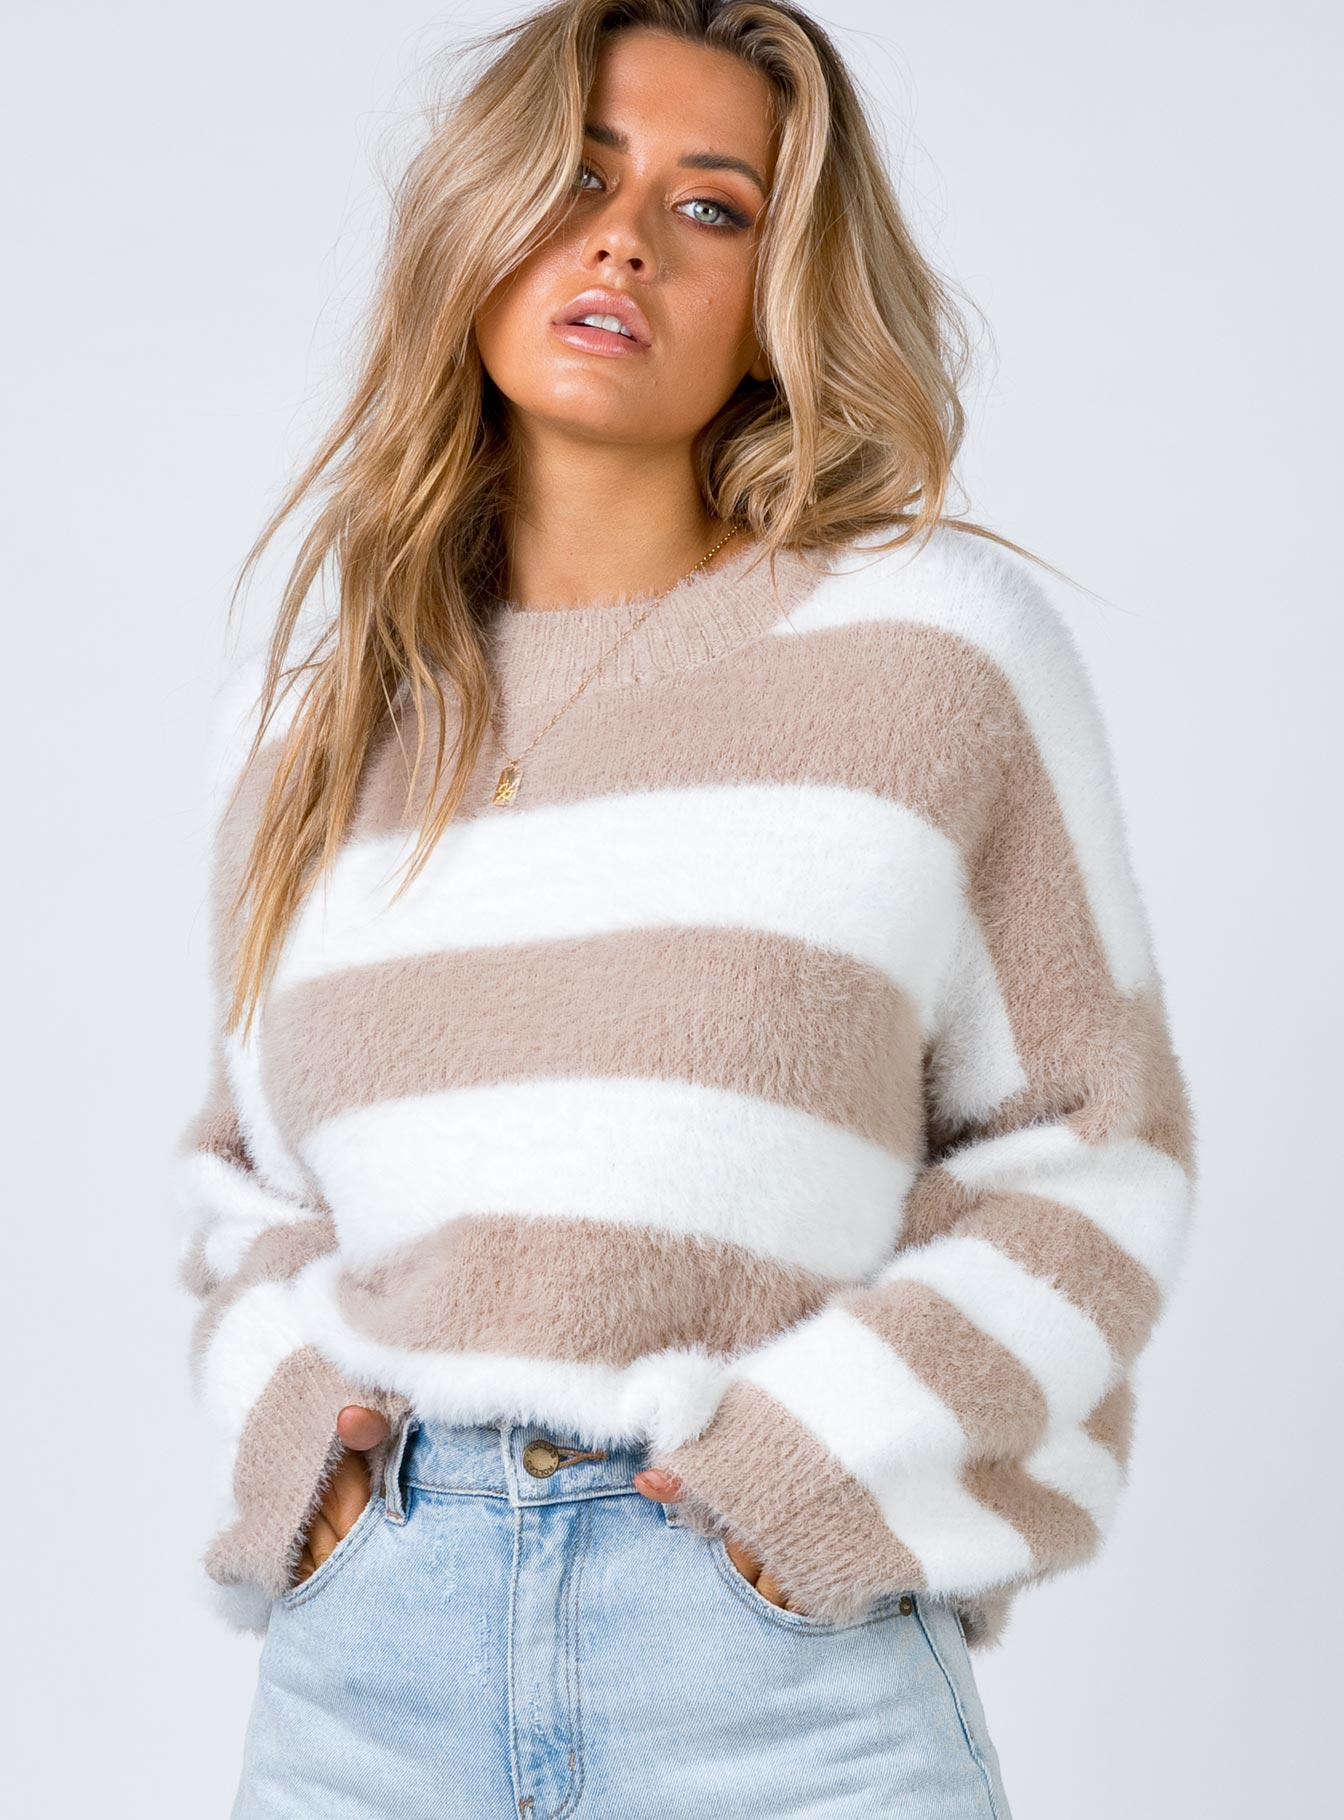 Damari Jumper White/Brown